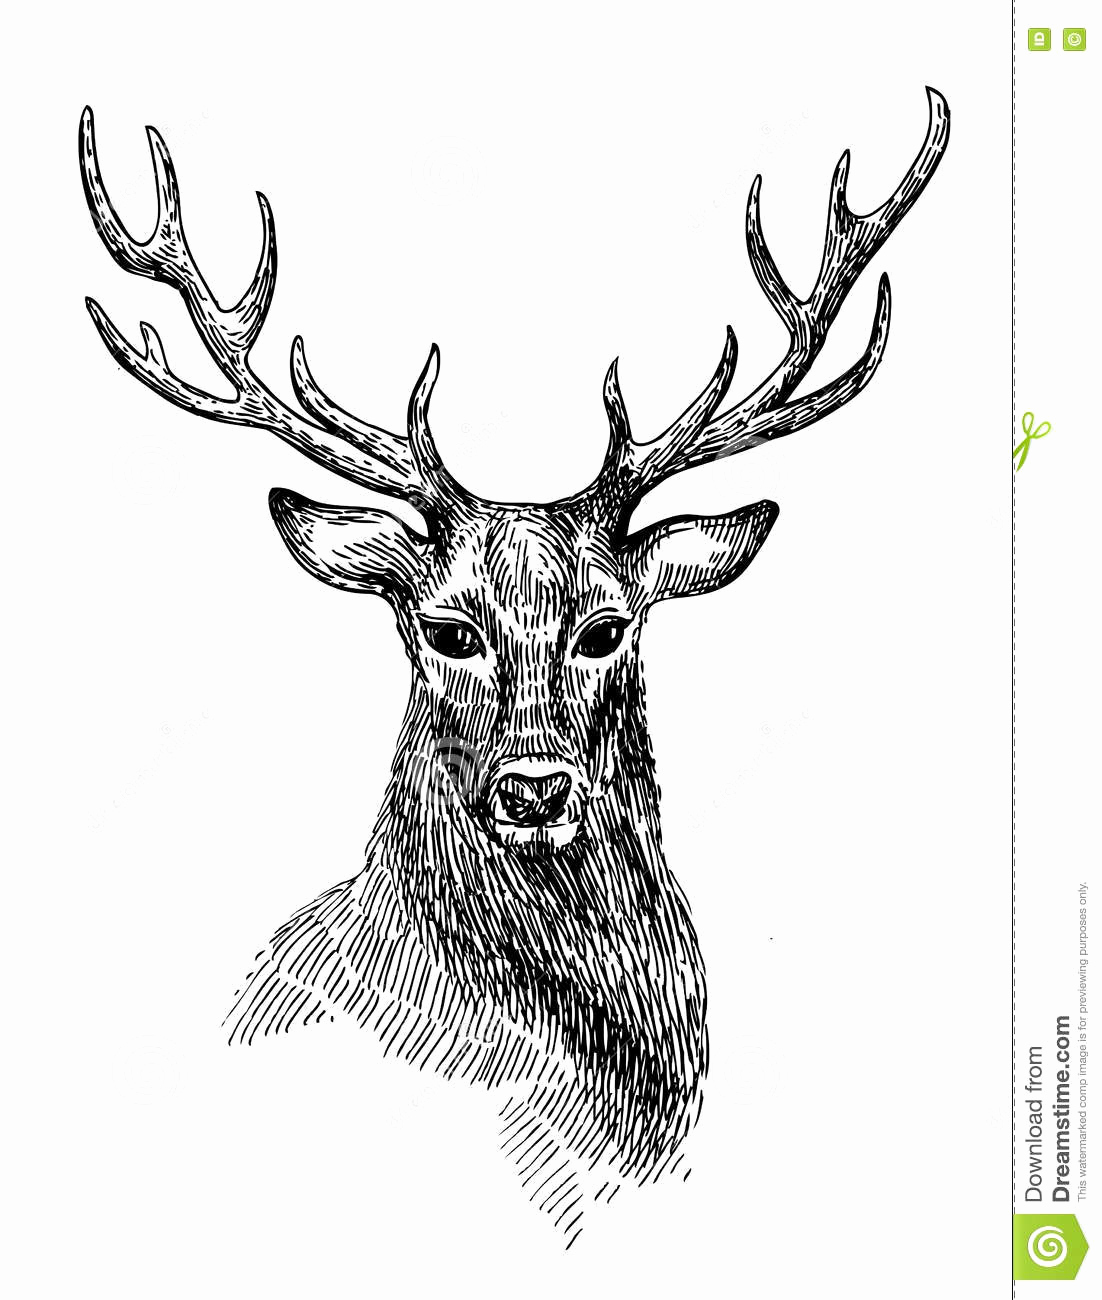 Black and White Illustration Luxury Sketch Of Deer Stock Image Image Of Wildlife Sketch